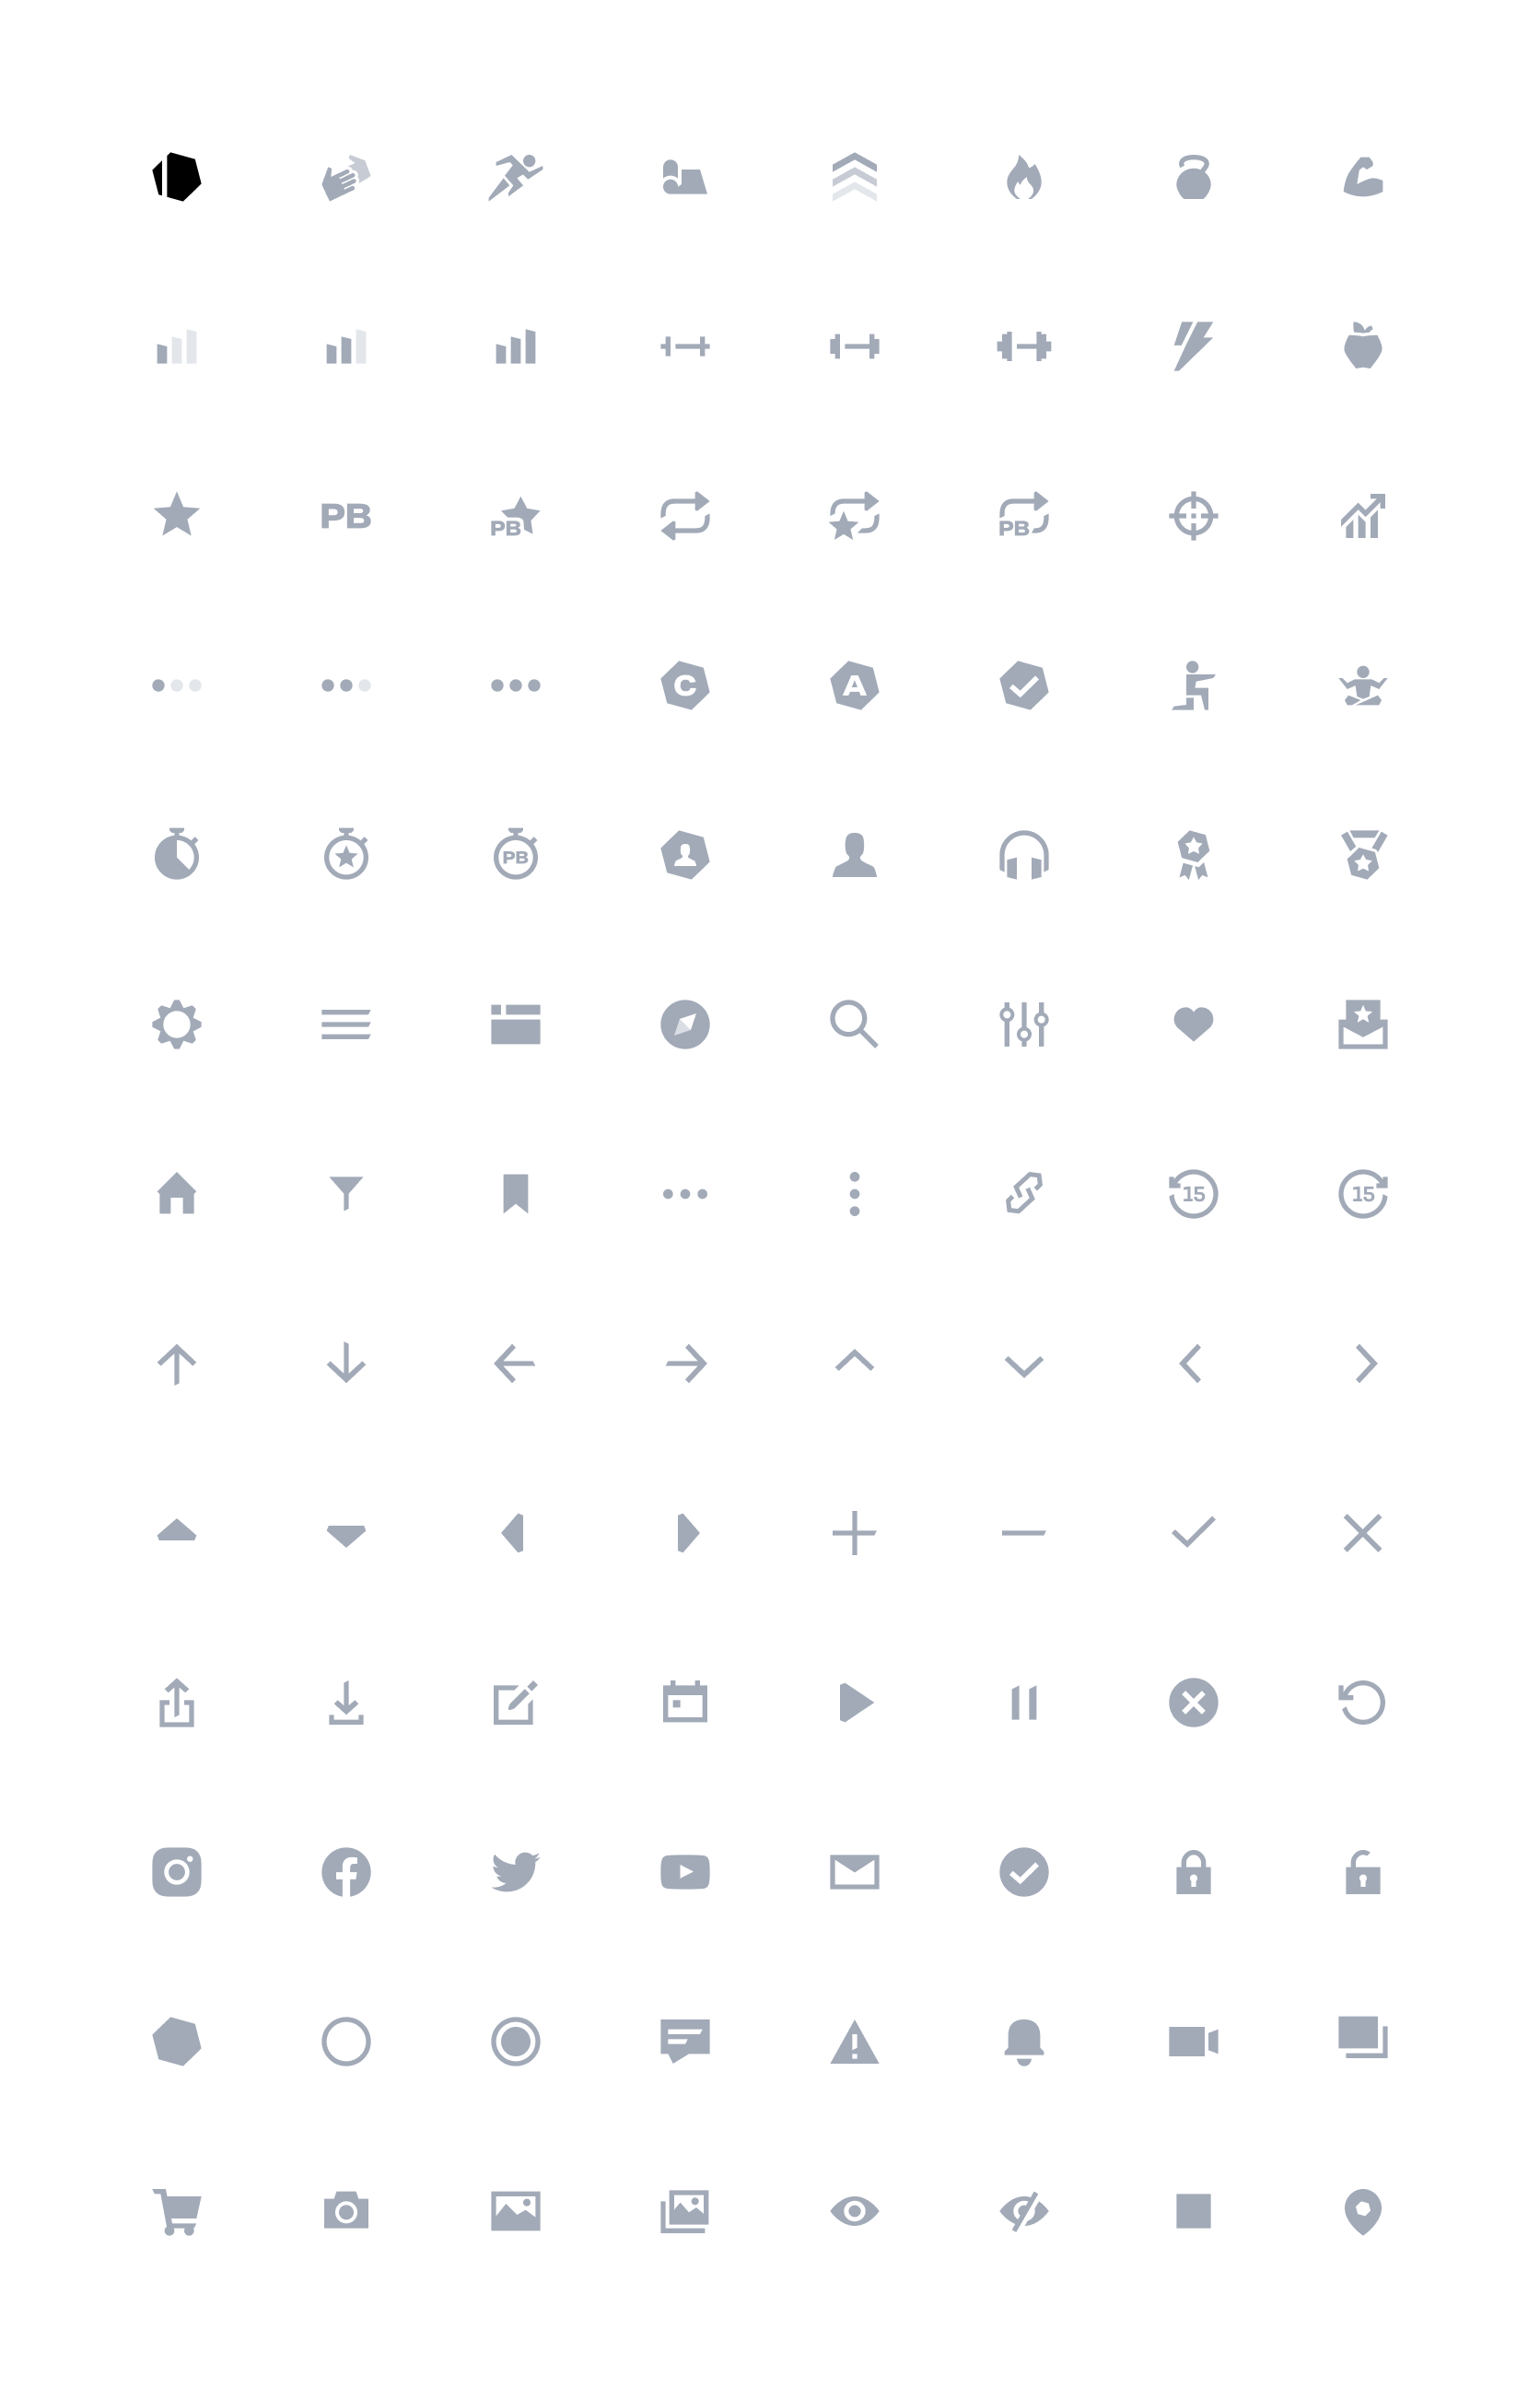 Grid of icons